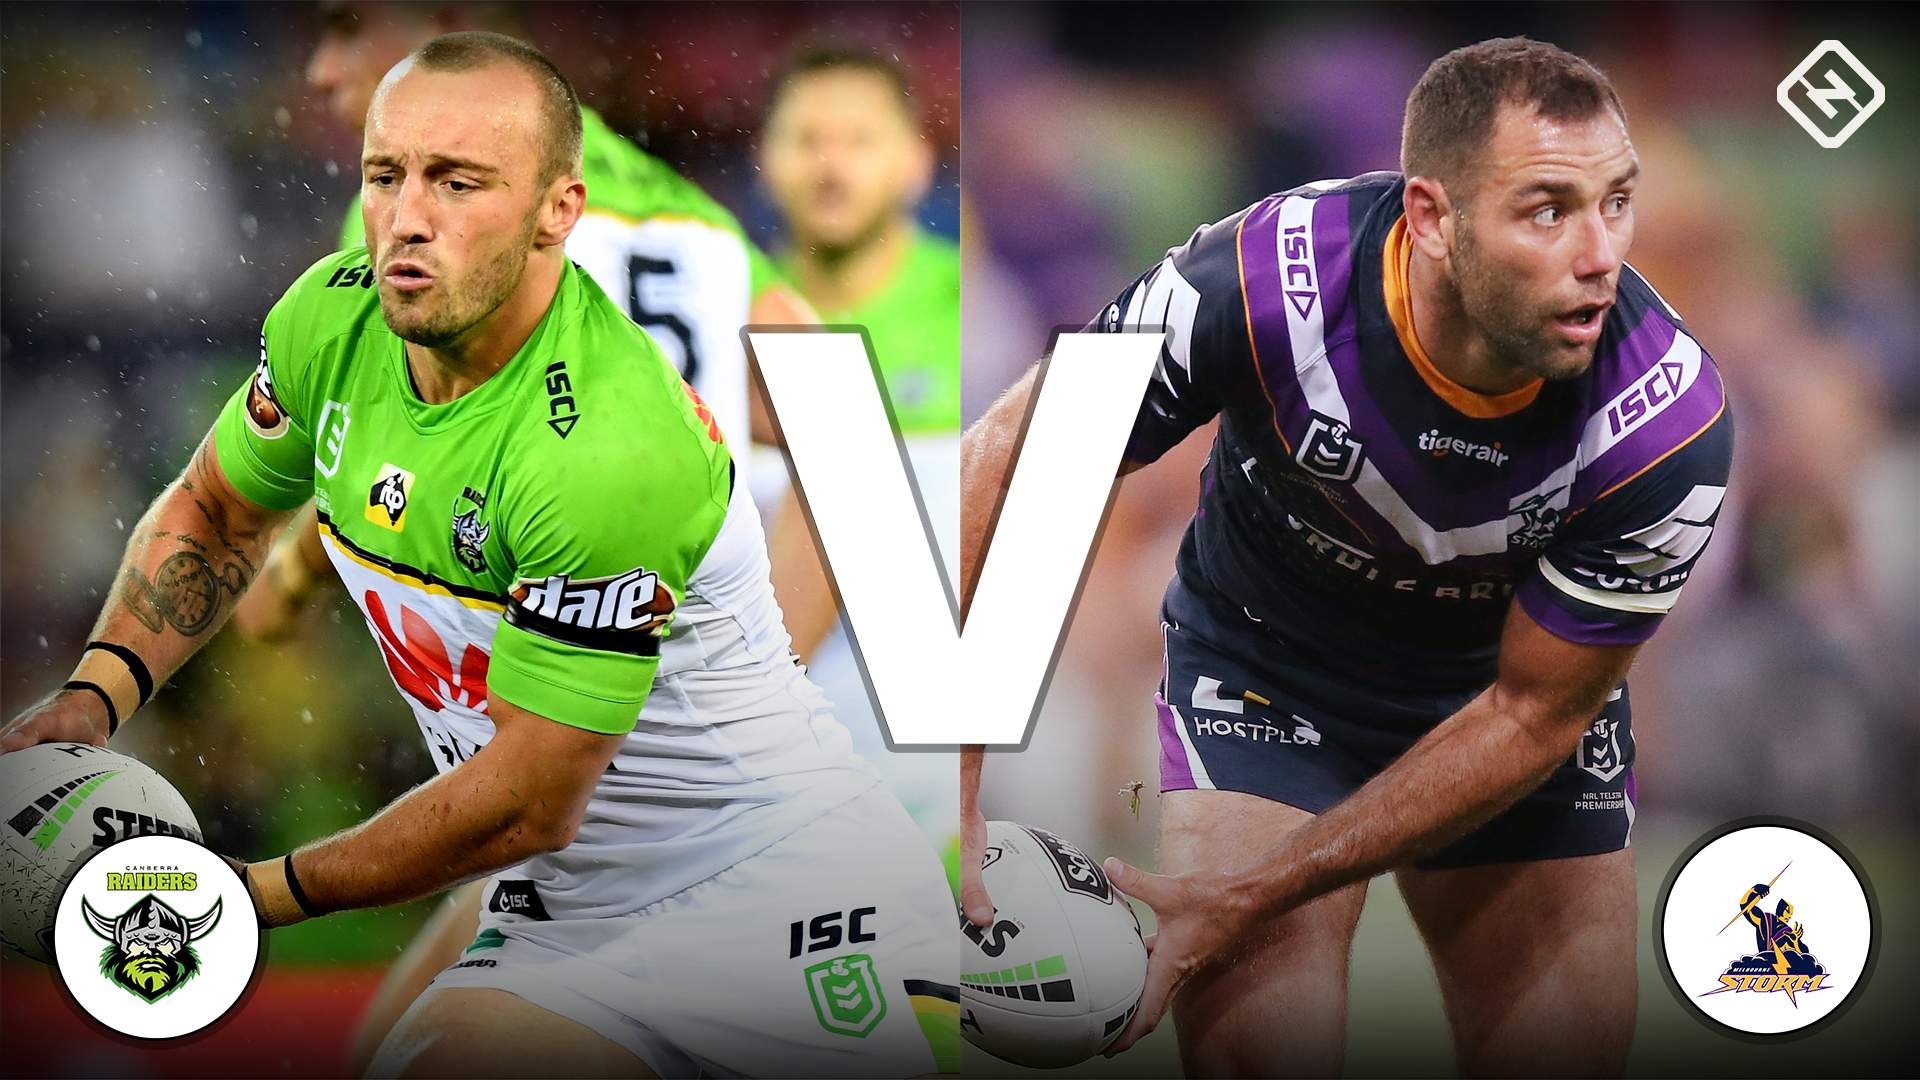 Canberra Raiders v Melbourne Storm - live scores, commentary and highlights